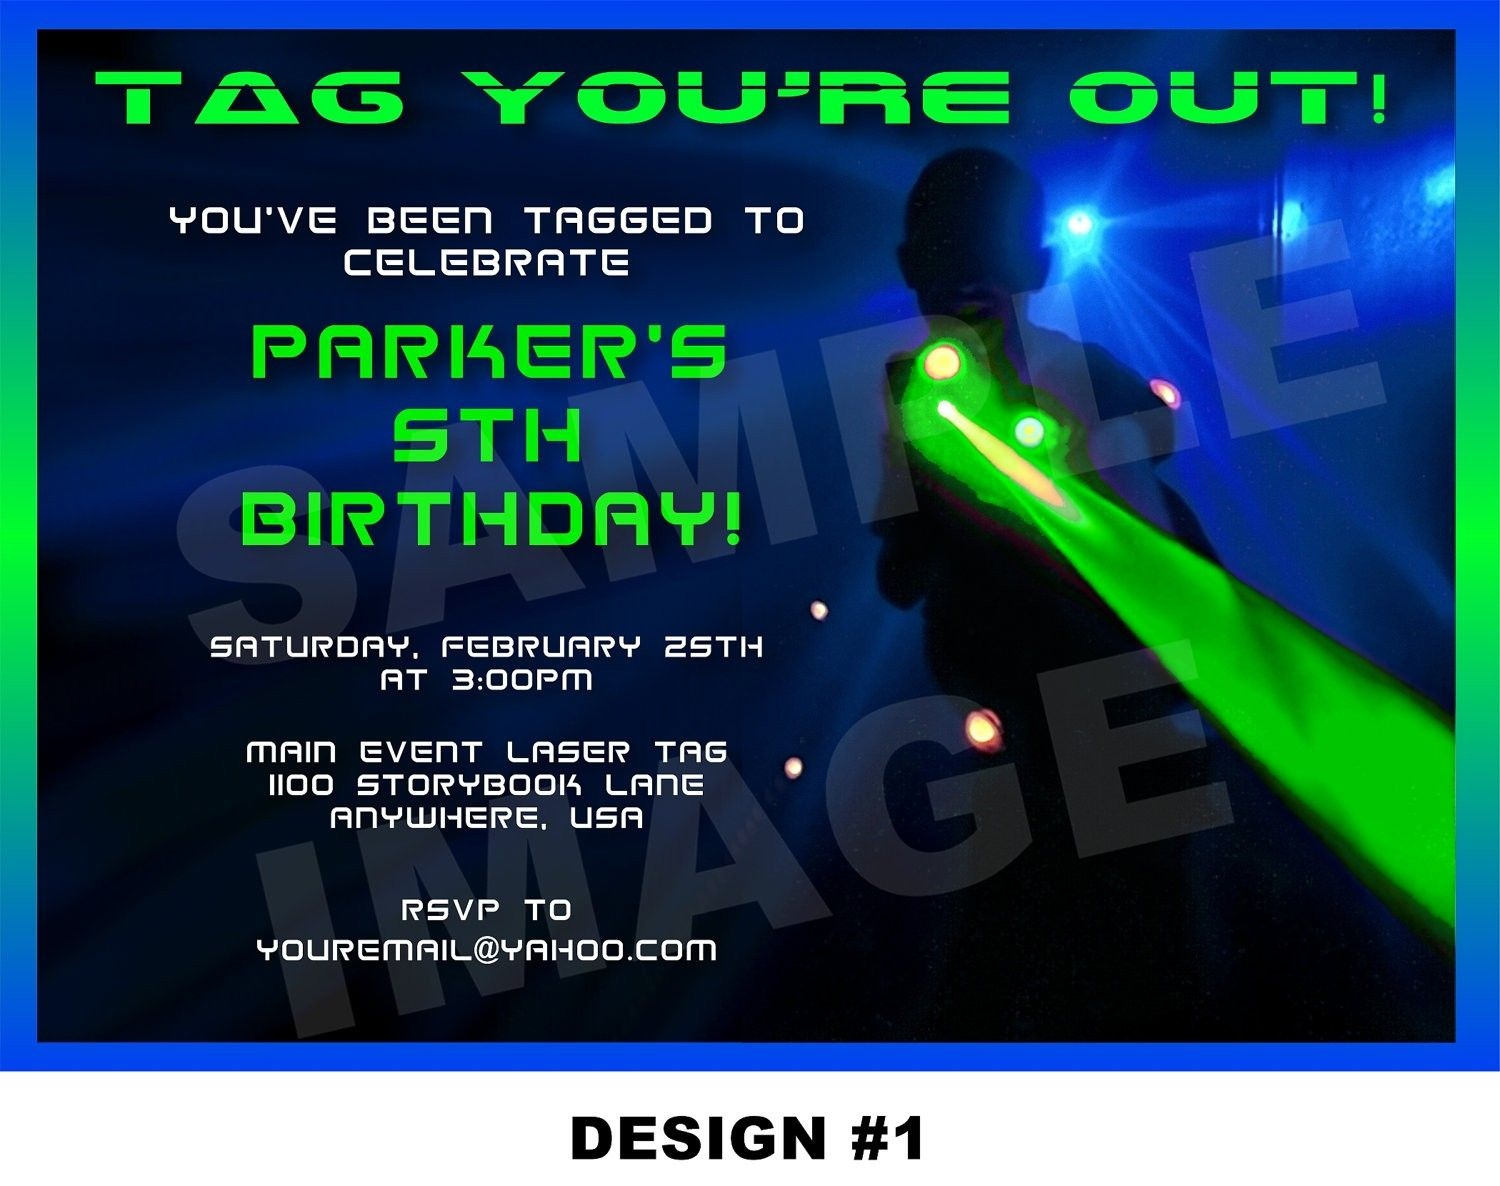 Laser Tag Party Invitations Template Free | Nicks Birthday In 2019 - Free Printable Laser Tag Invitation Template